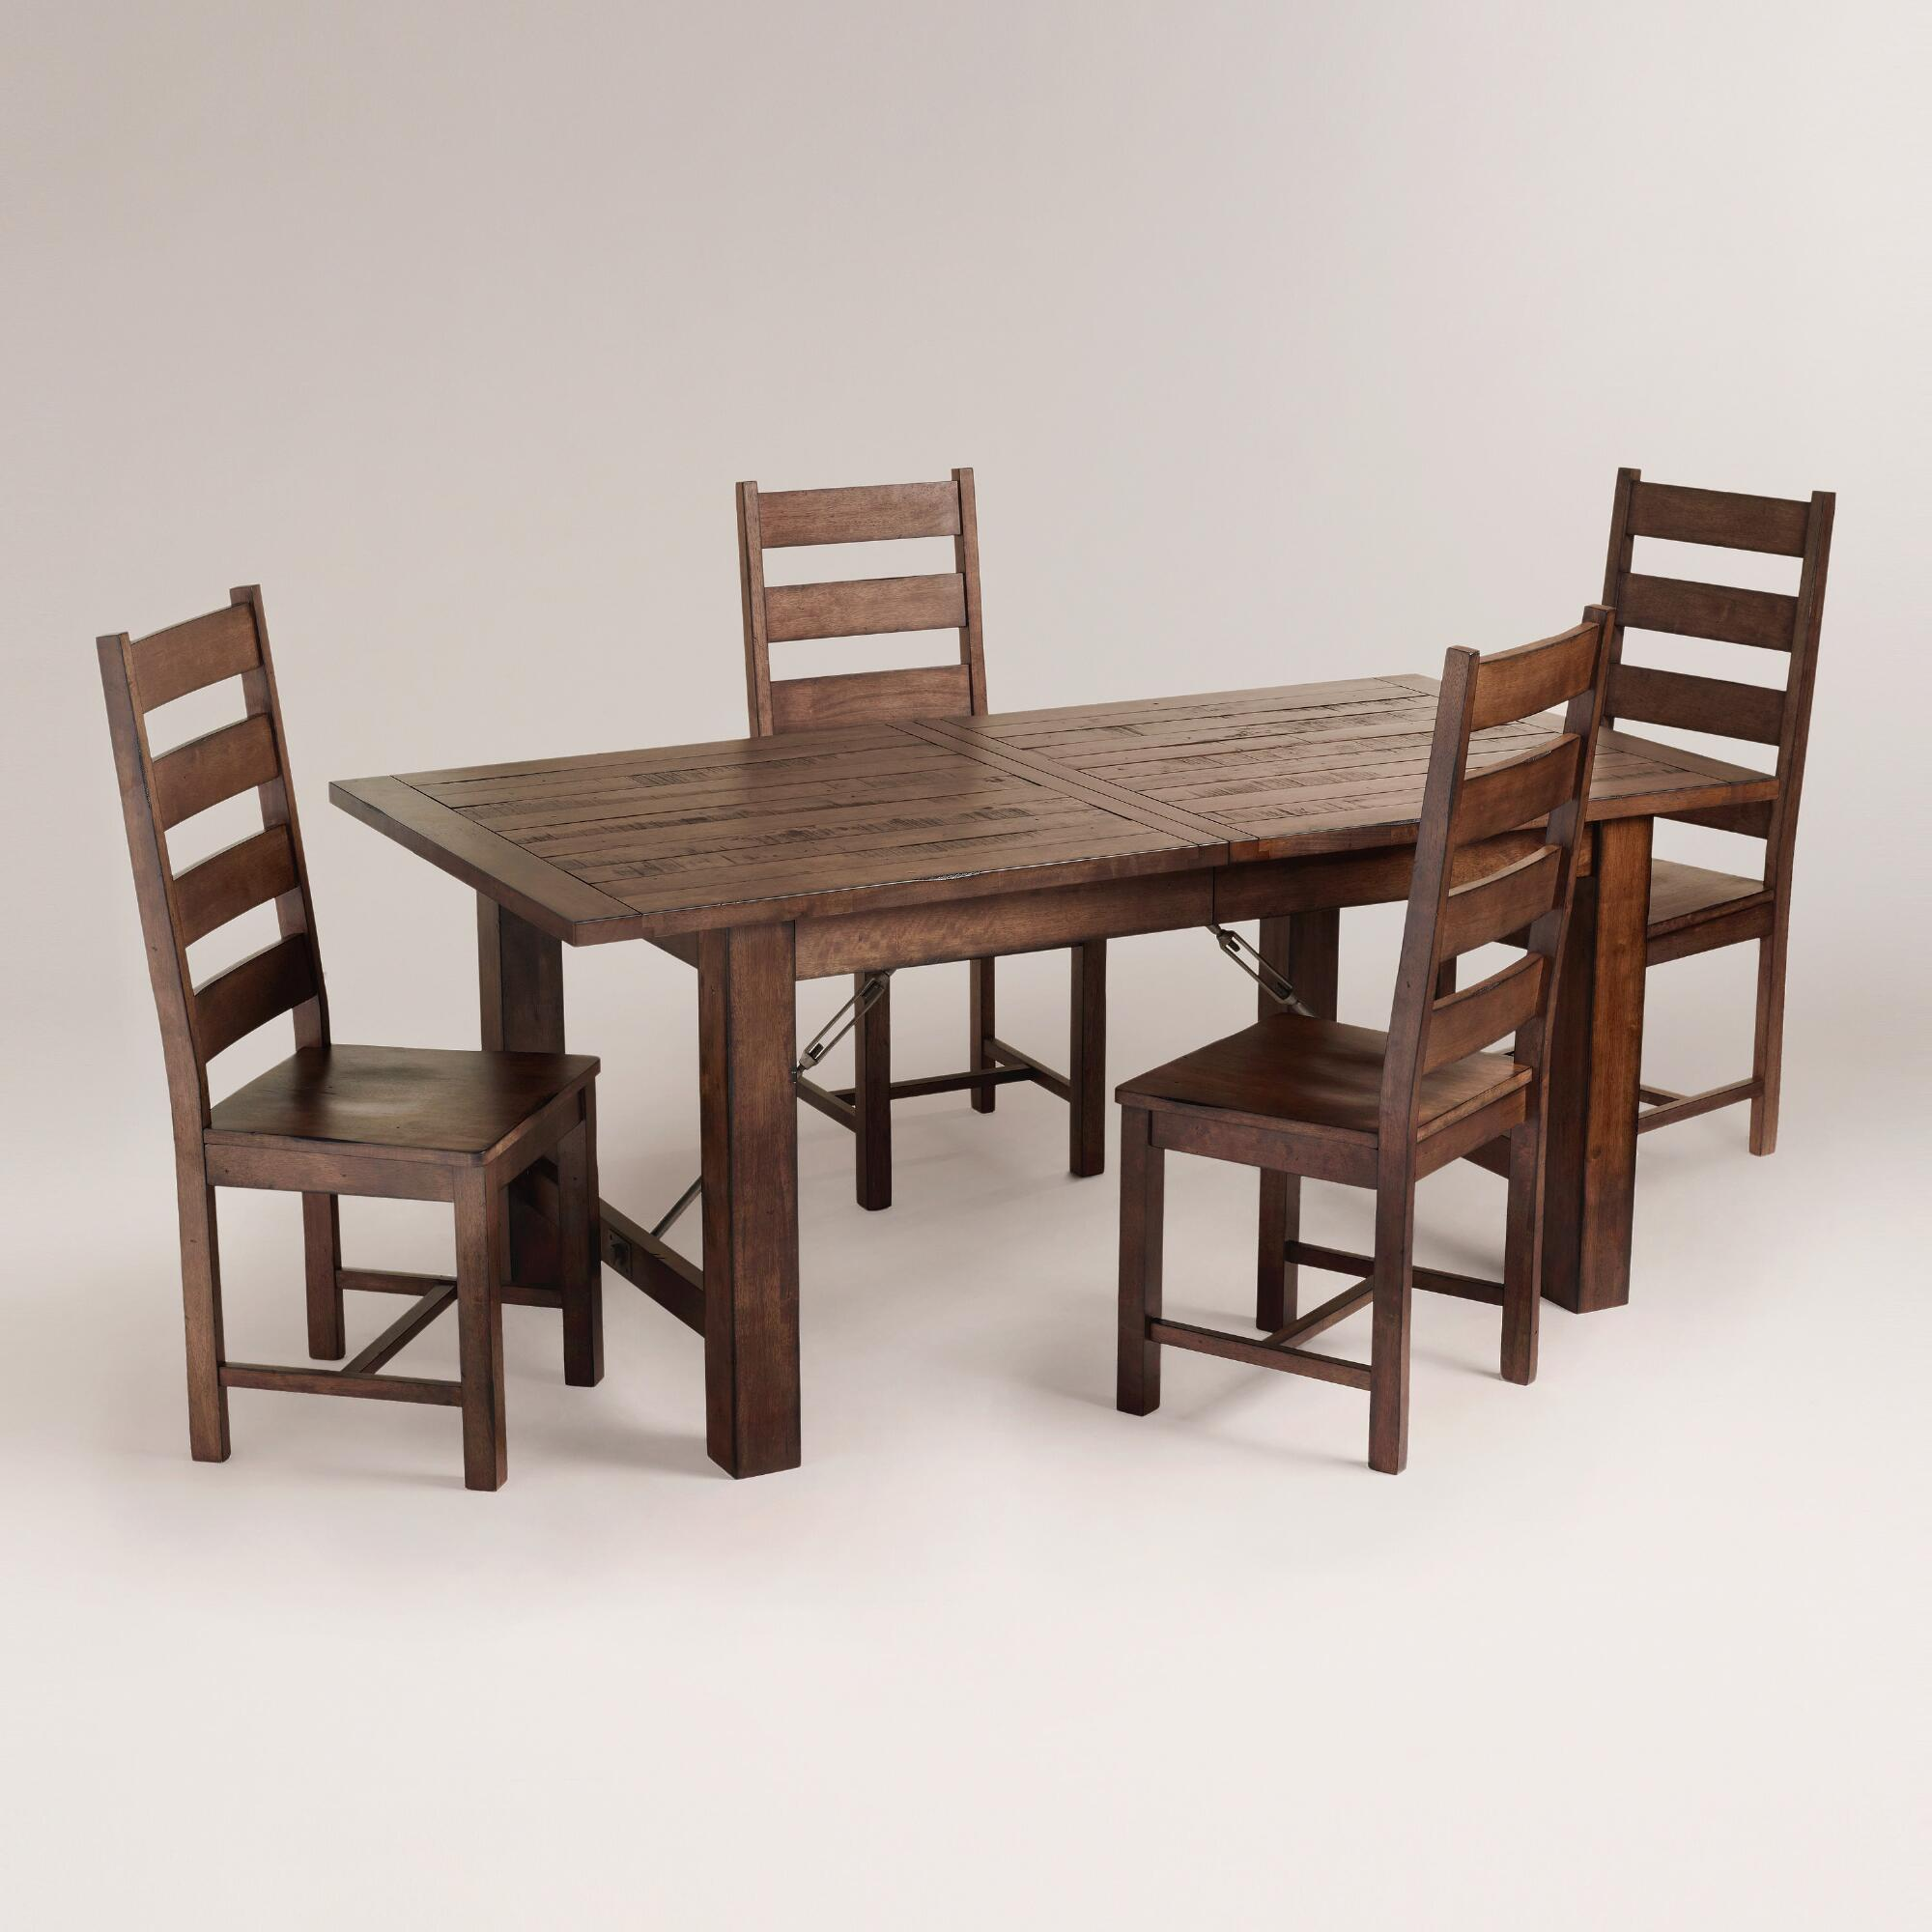 Garner dining table and chairs furniture set world market Uk home furniture market